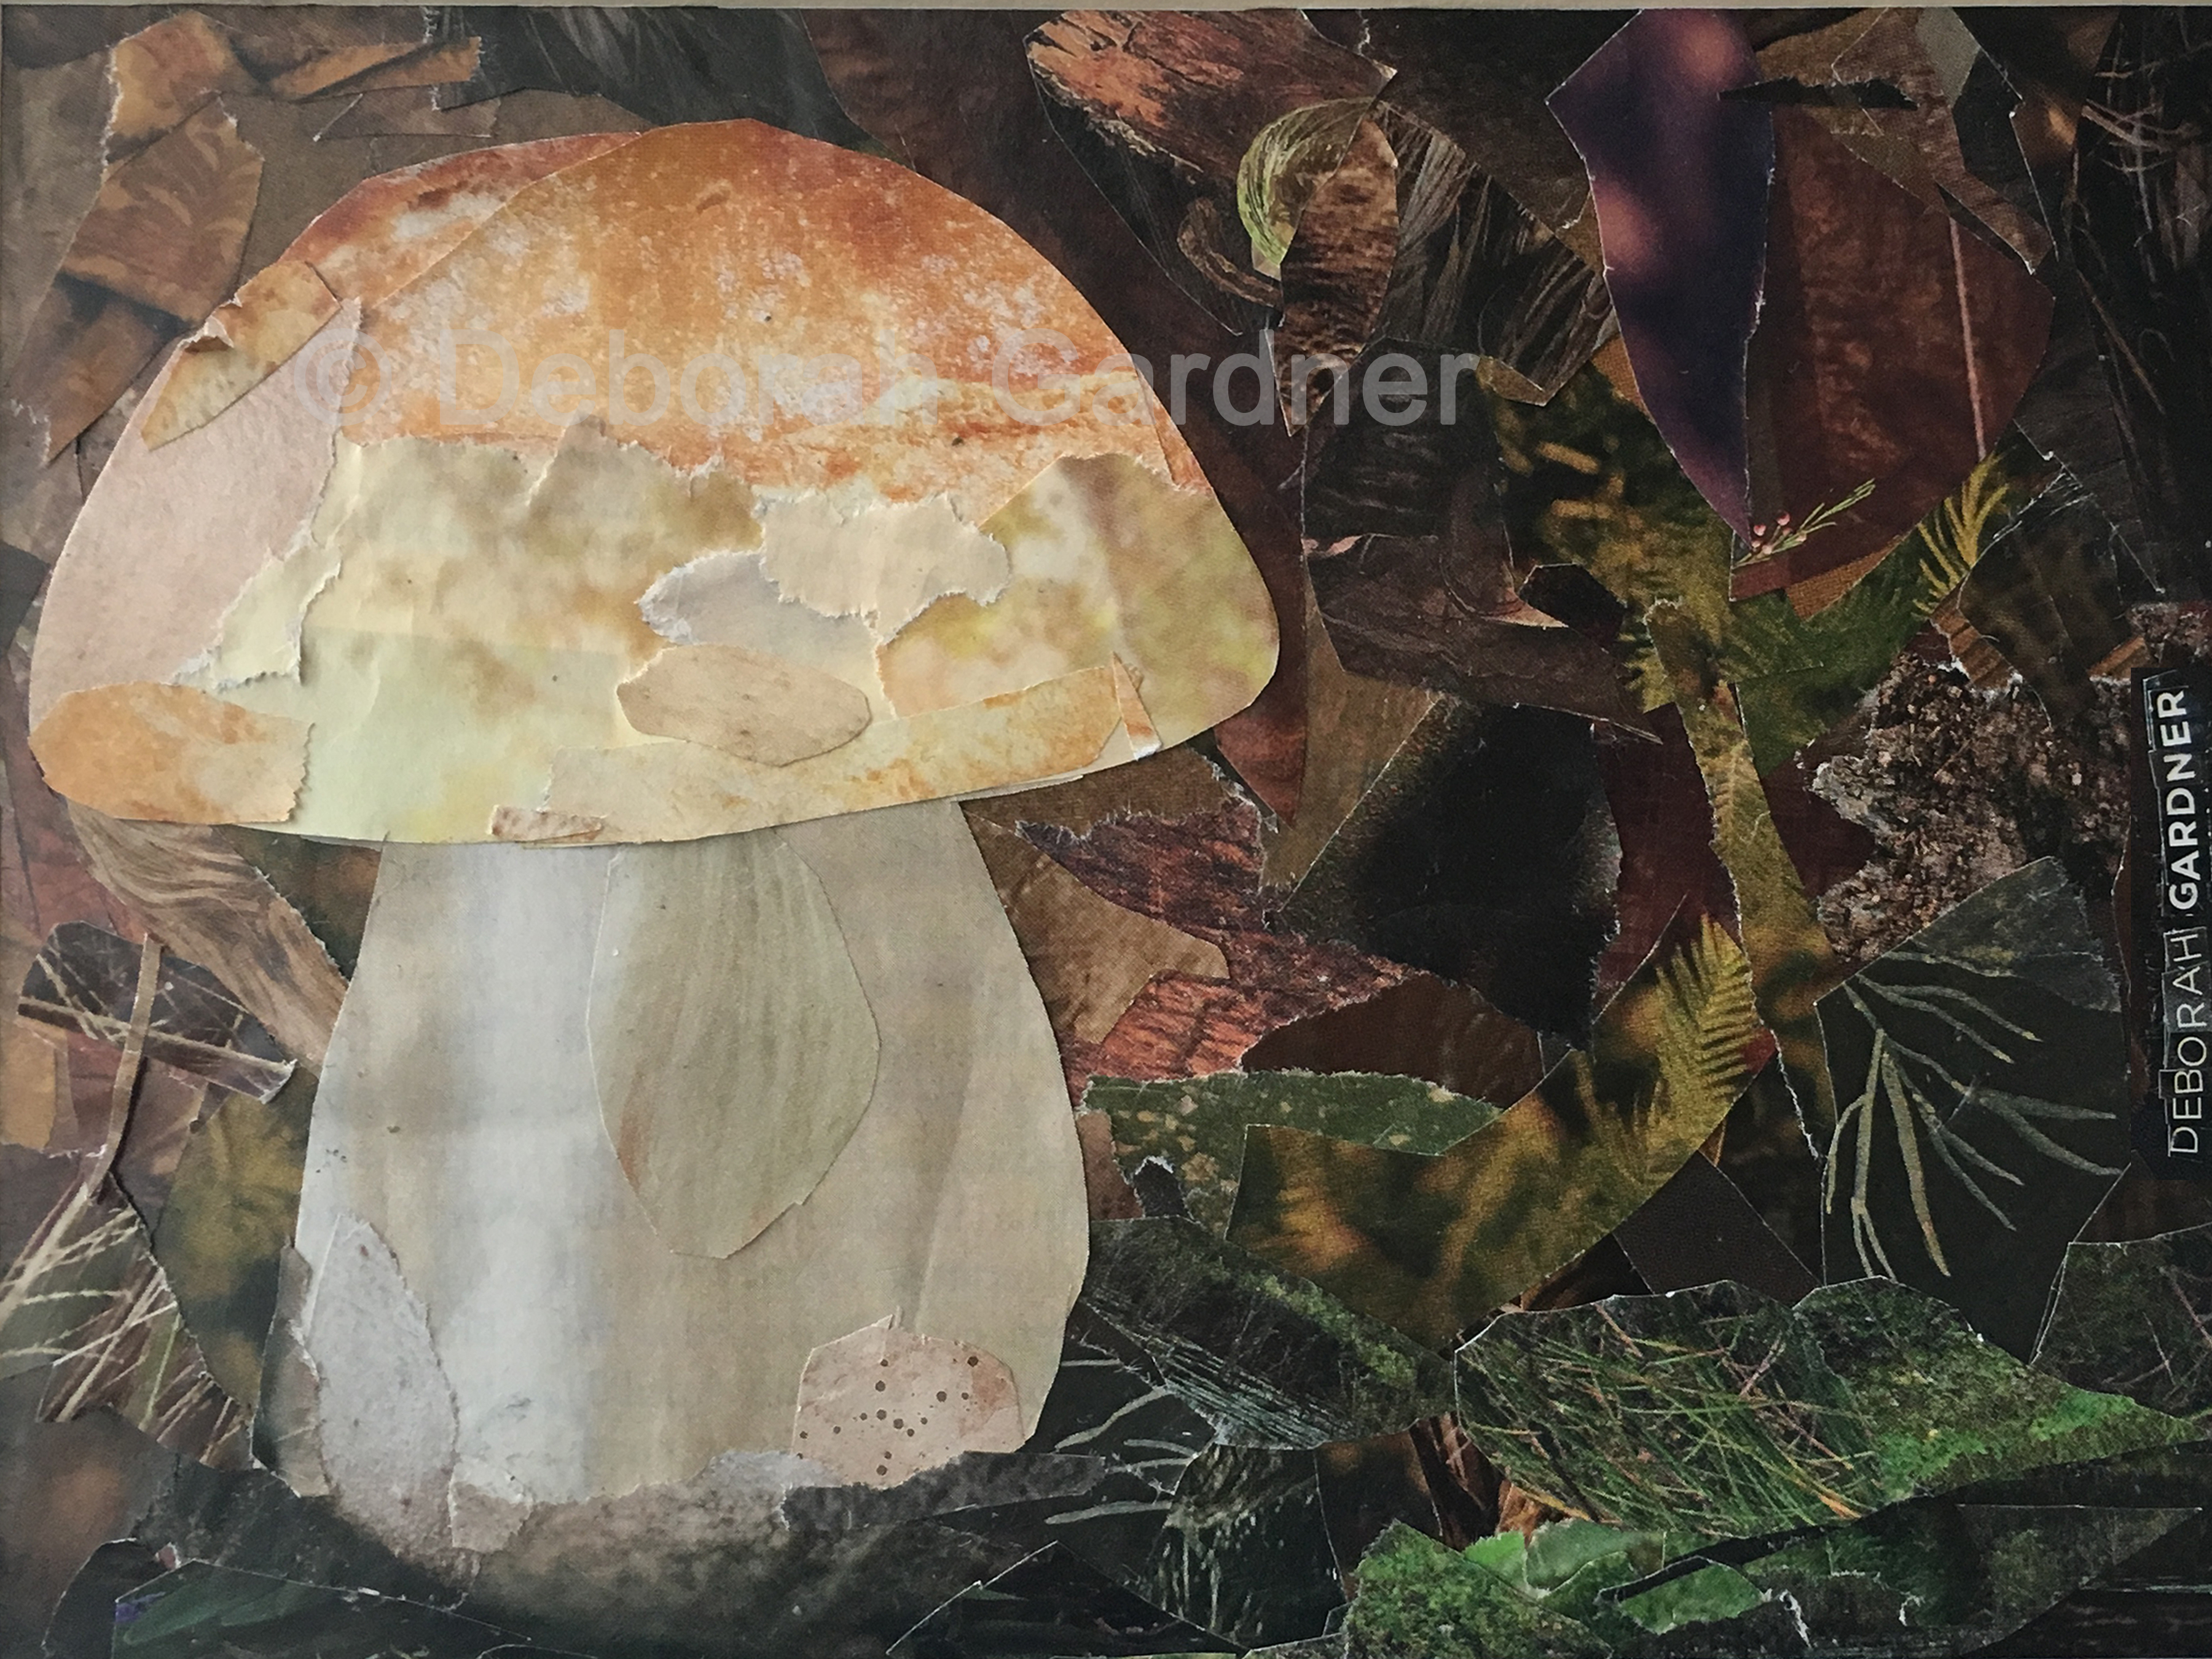 Image of a collage depicting a porcini mushroom.